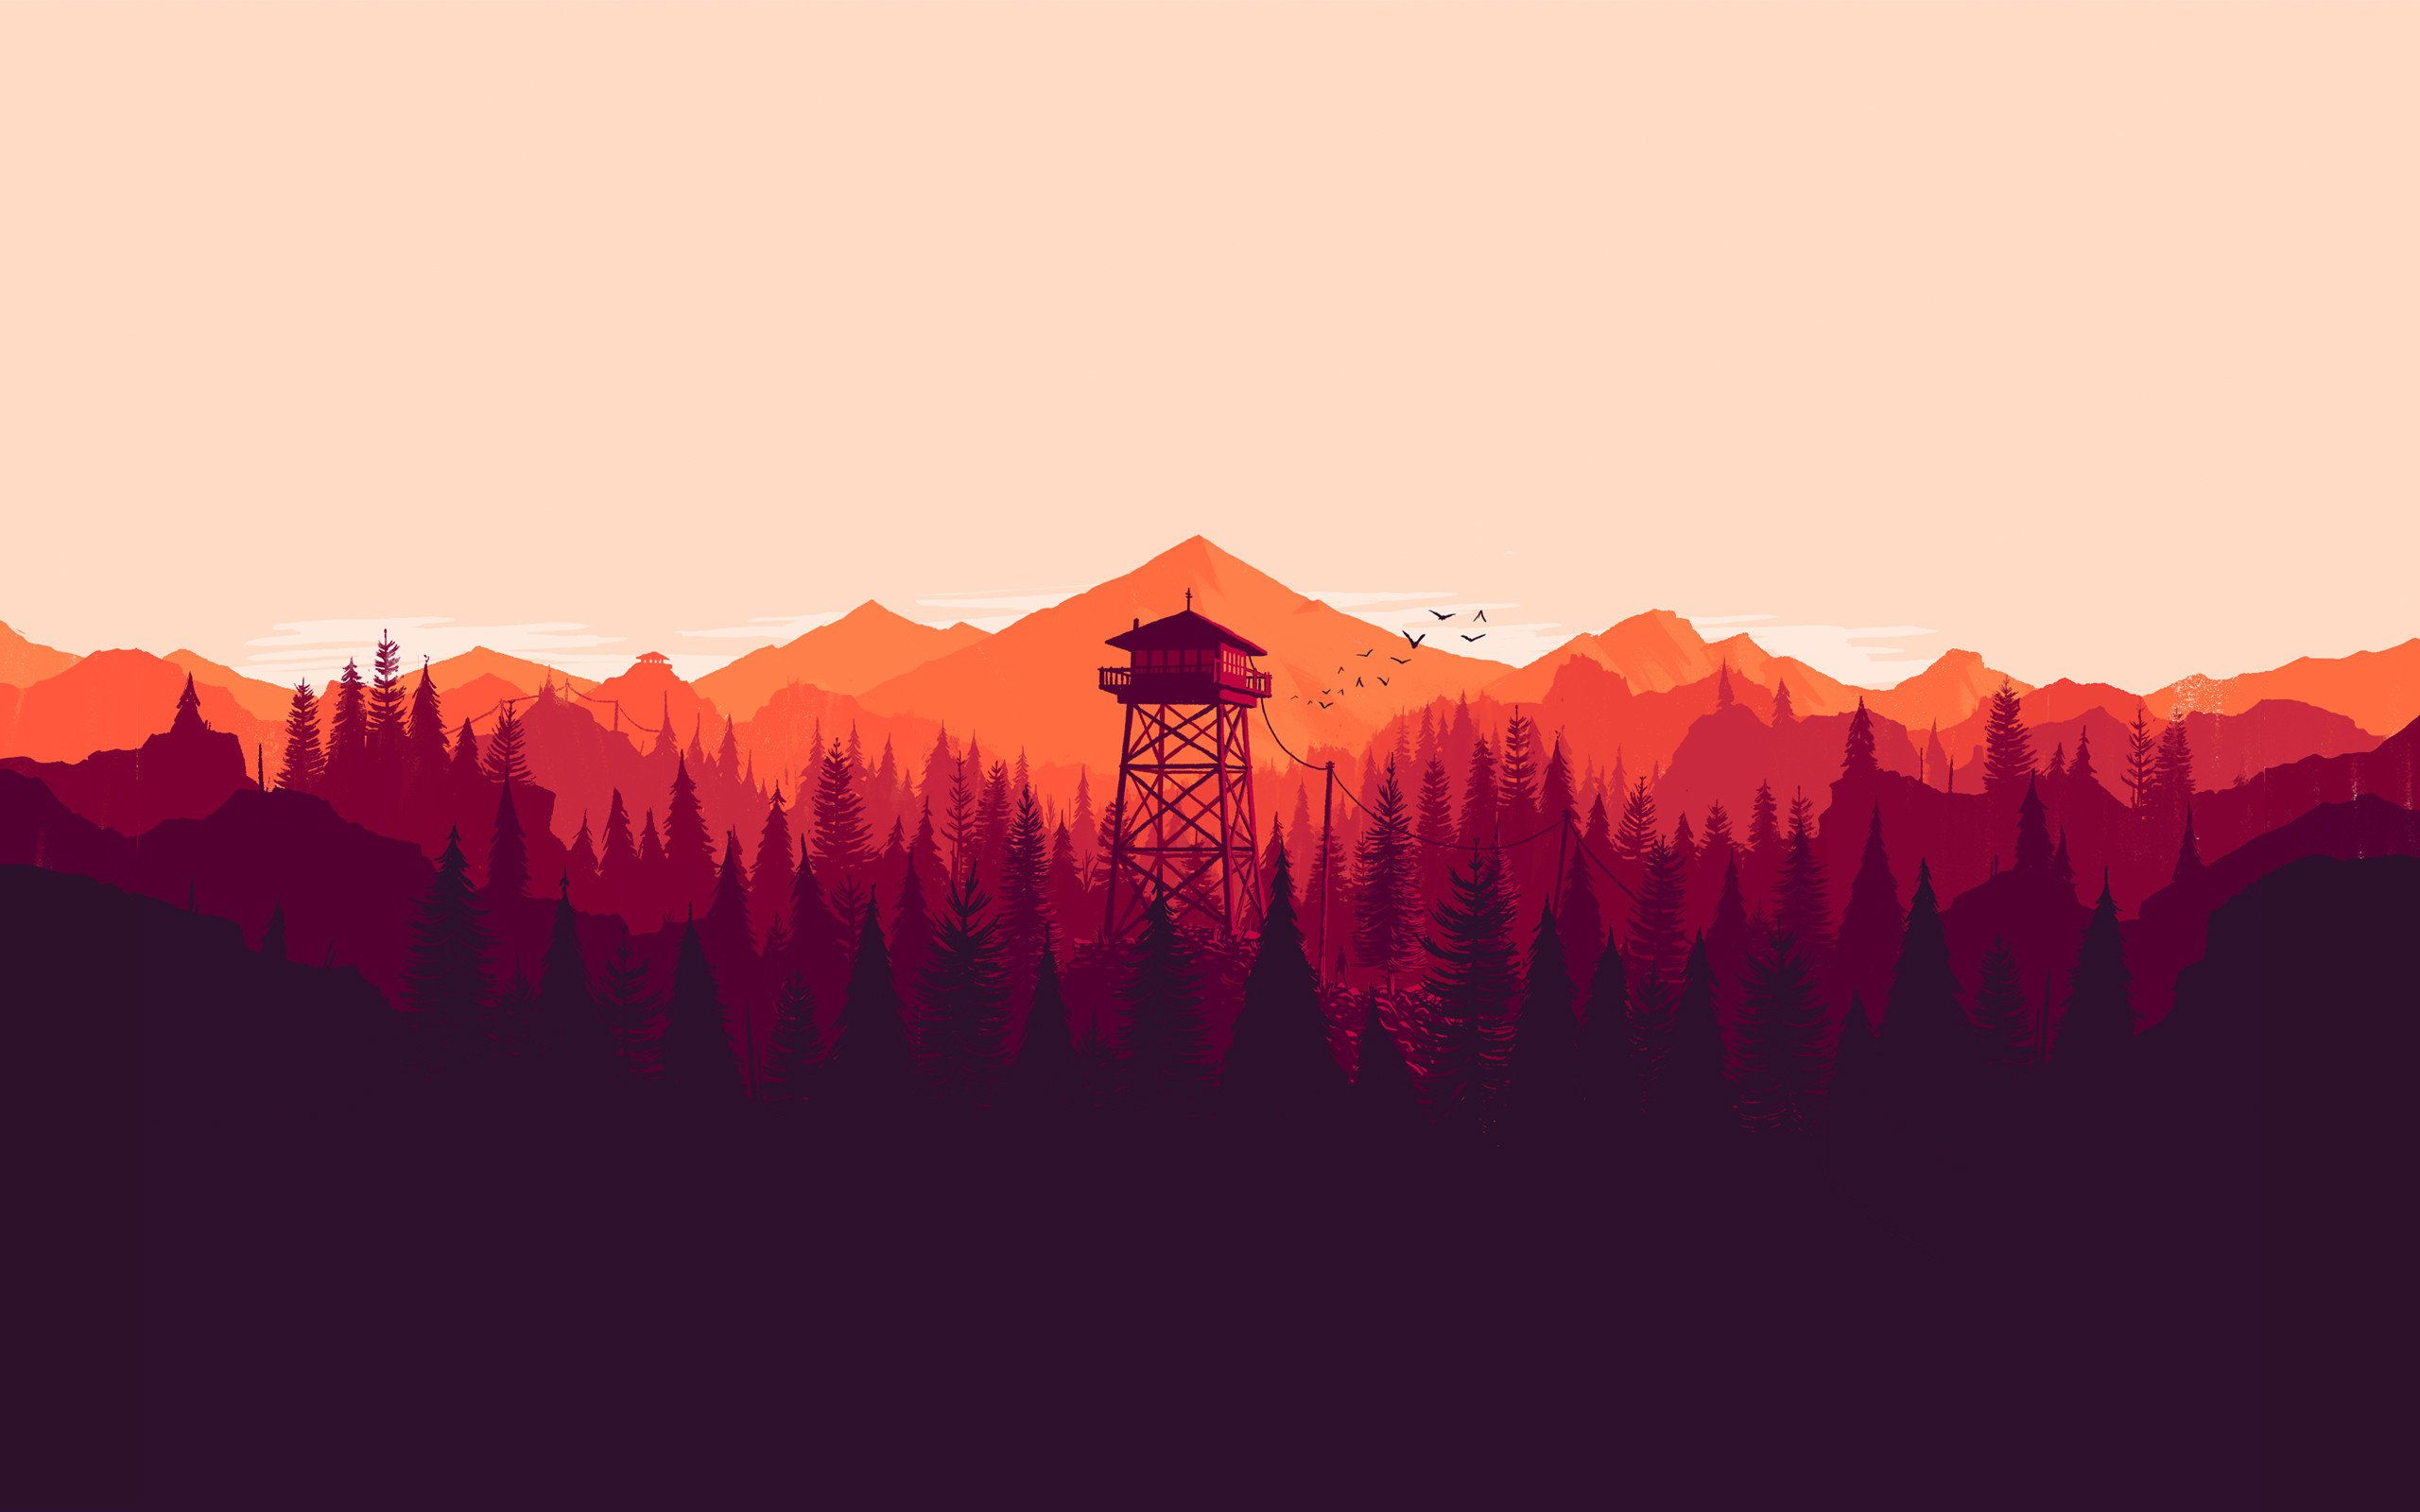 23 Minimalist wallpapers to get your week started right | AndroidGuys